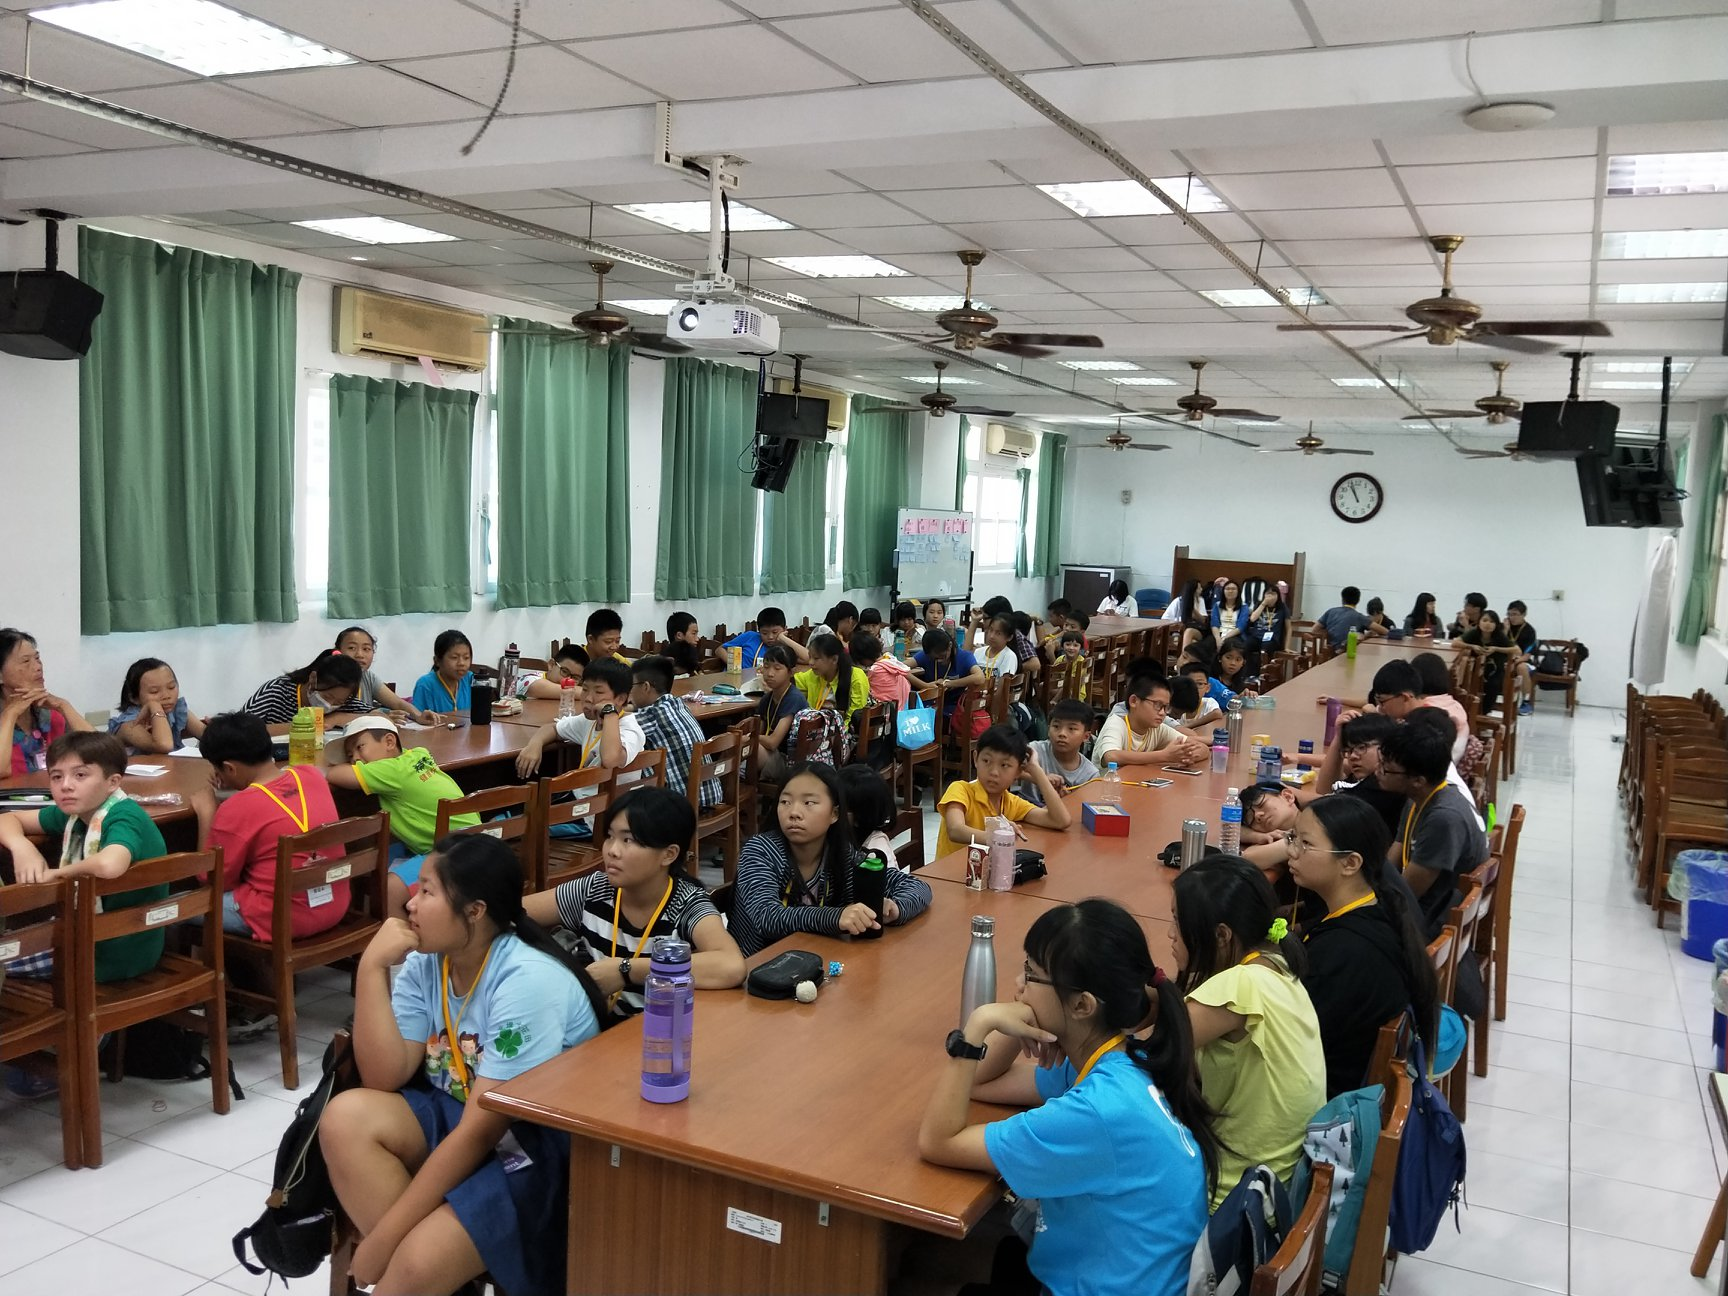 The International Summer English Camp was held in central Taiwan's Changhua County on July 9-13, 2018. (mage: Changhua Parent Union Advisory Council)